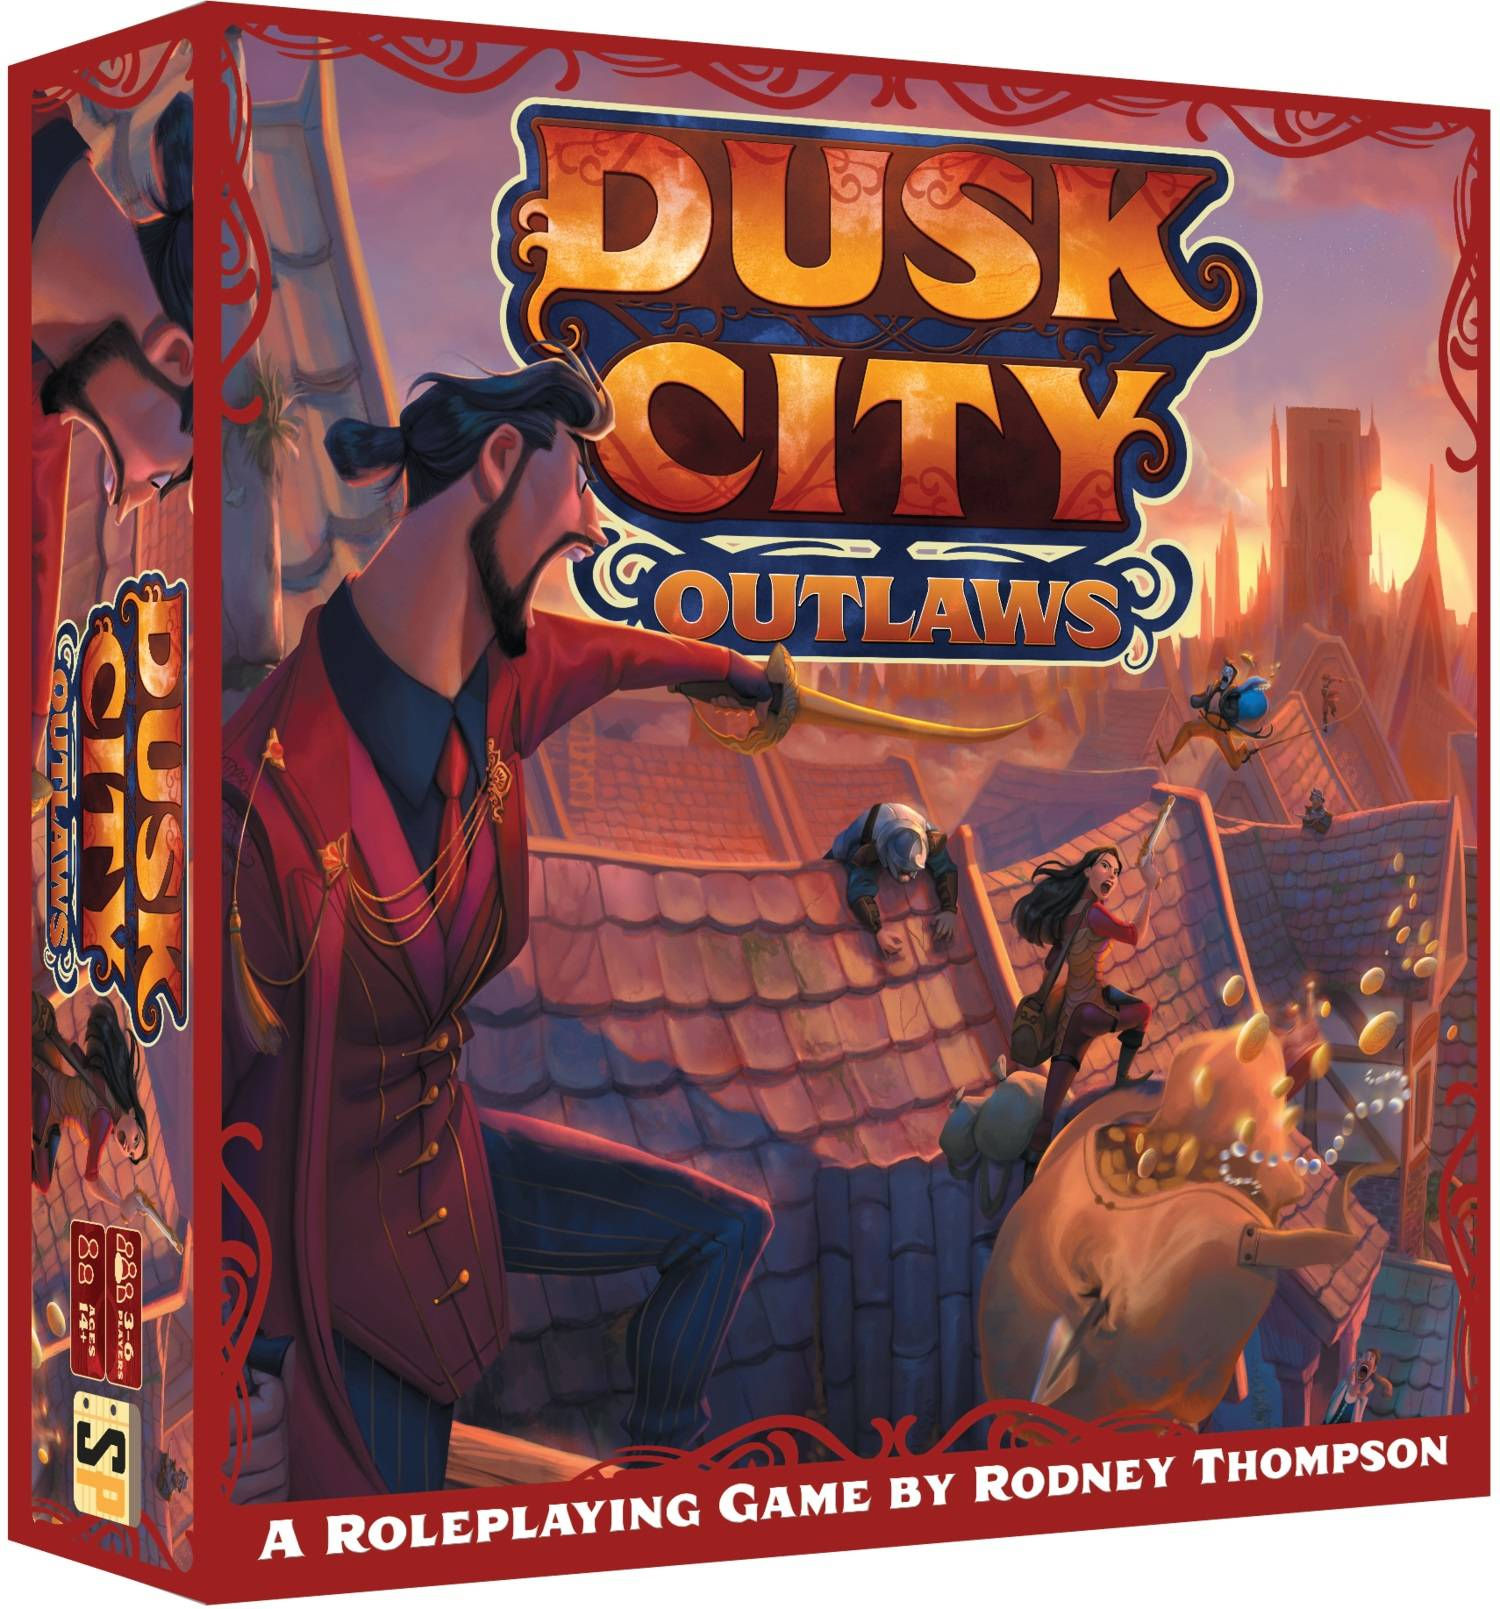 Game box where a man with a sword is yelling at a crew of thieves running across rooftops, spilling their stolen goods.